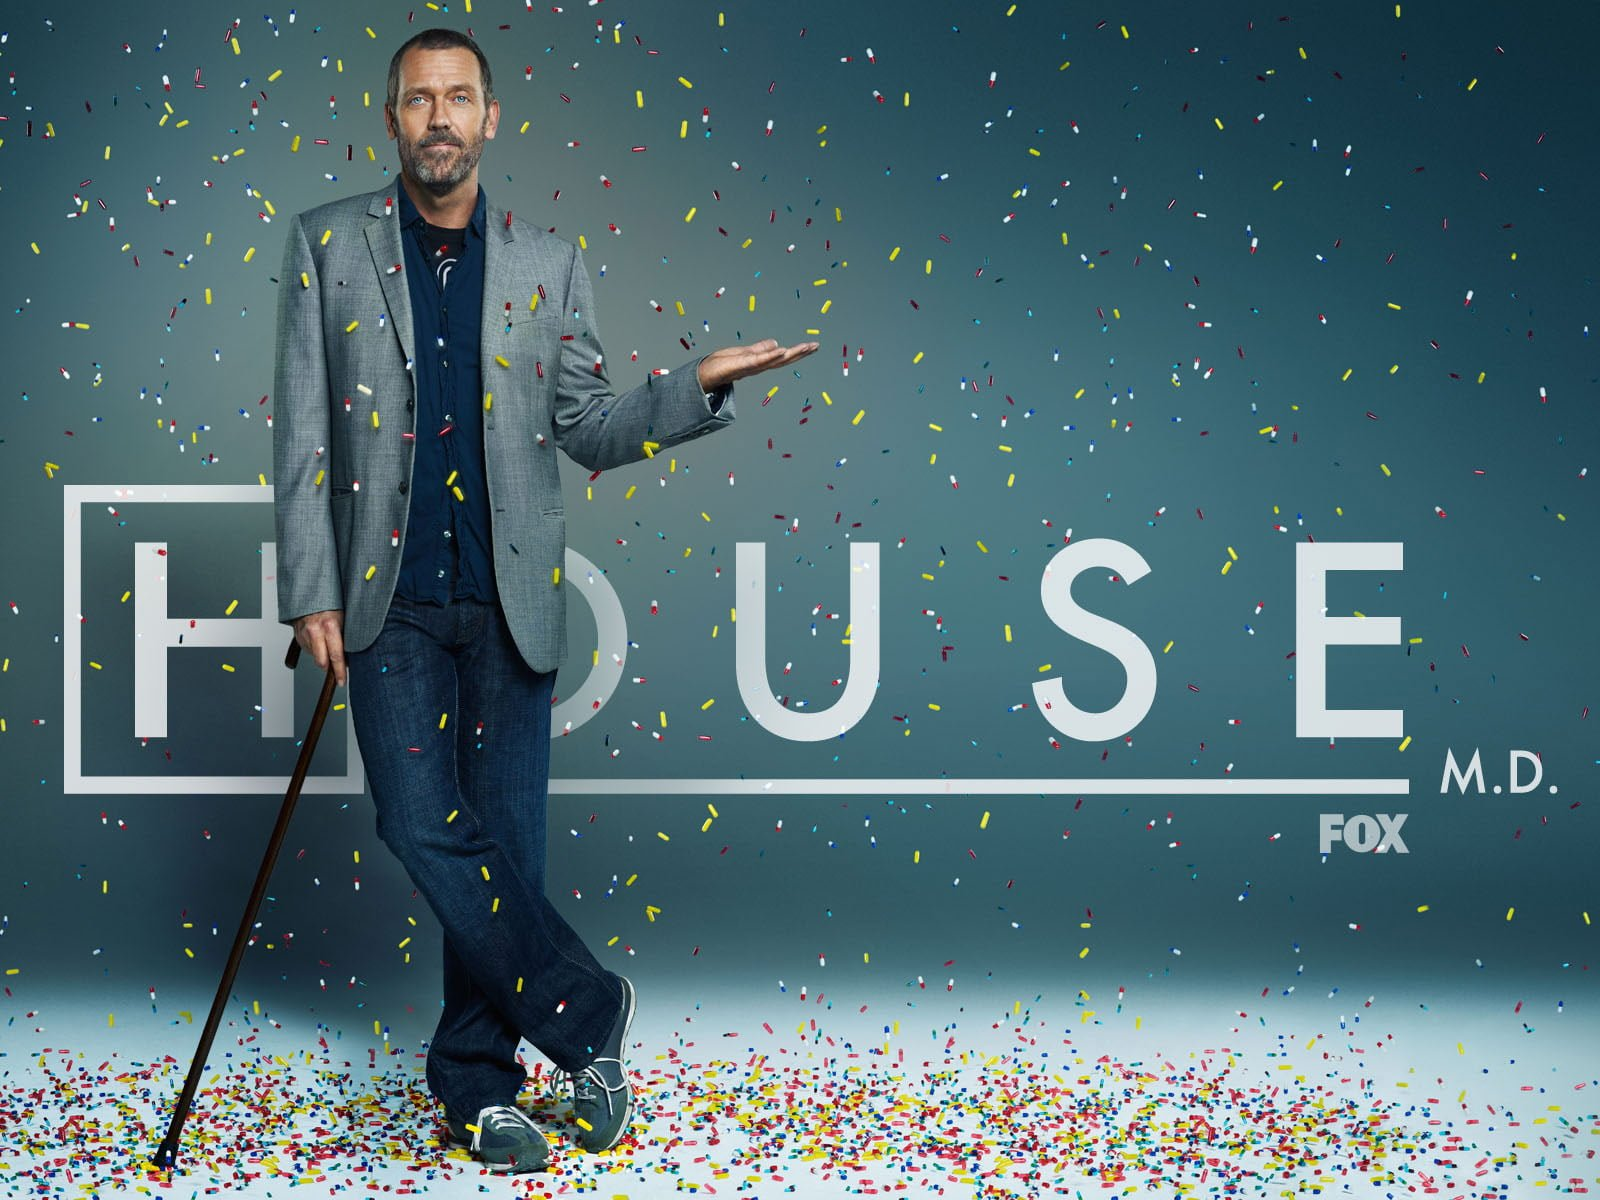 Exceptional Tv House Md Season 6 Vicodine Poster Wallpapers